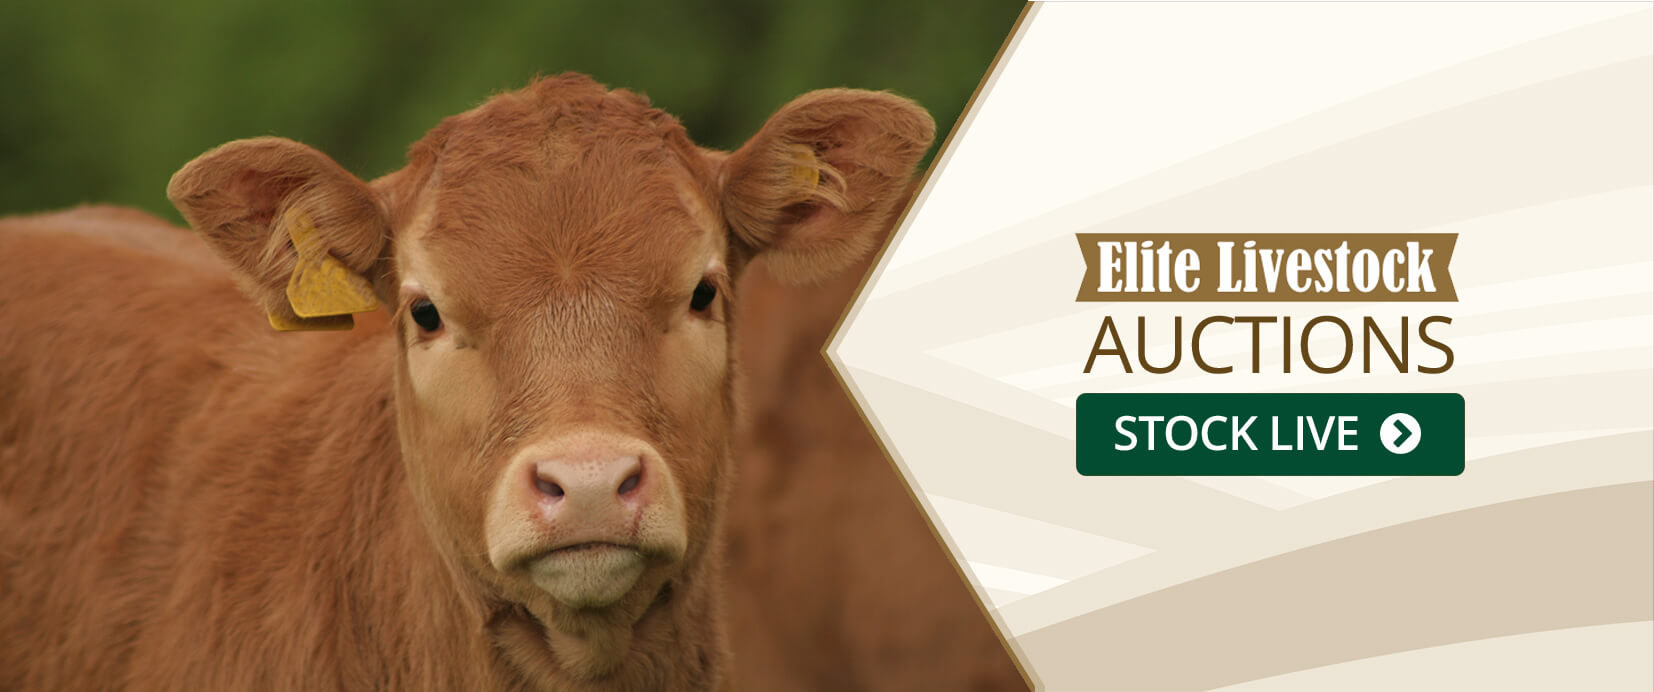 Elite Livestock Auctions Banner